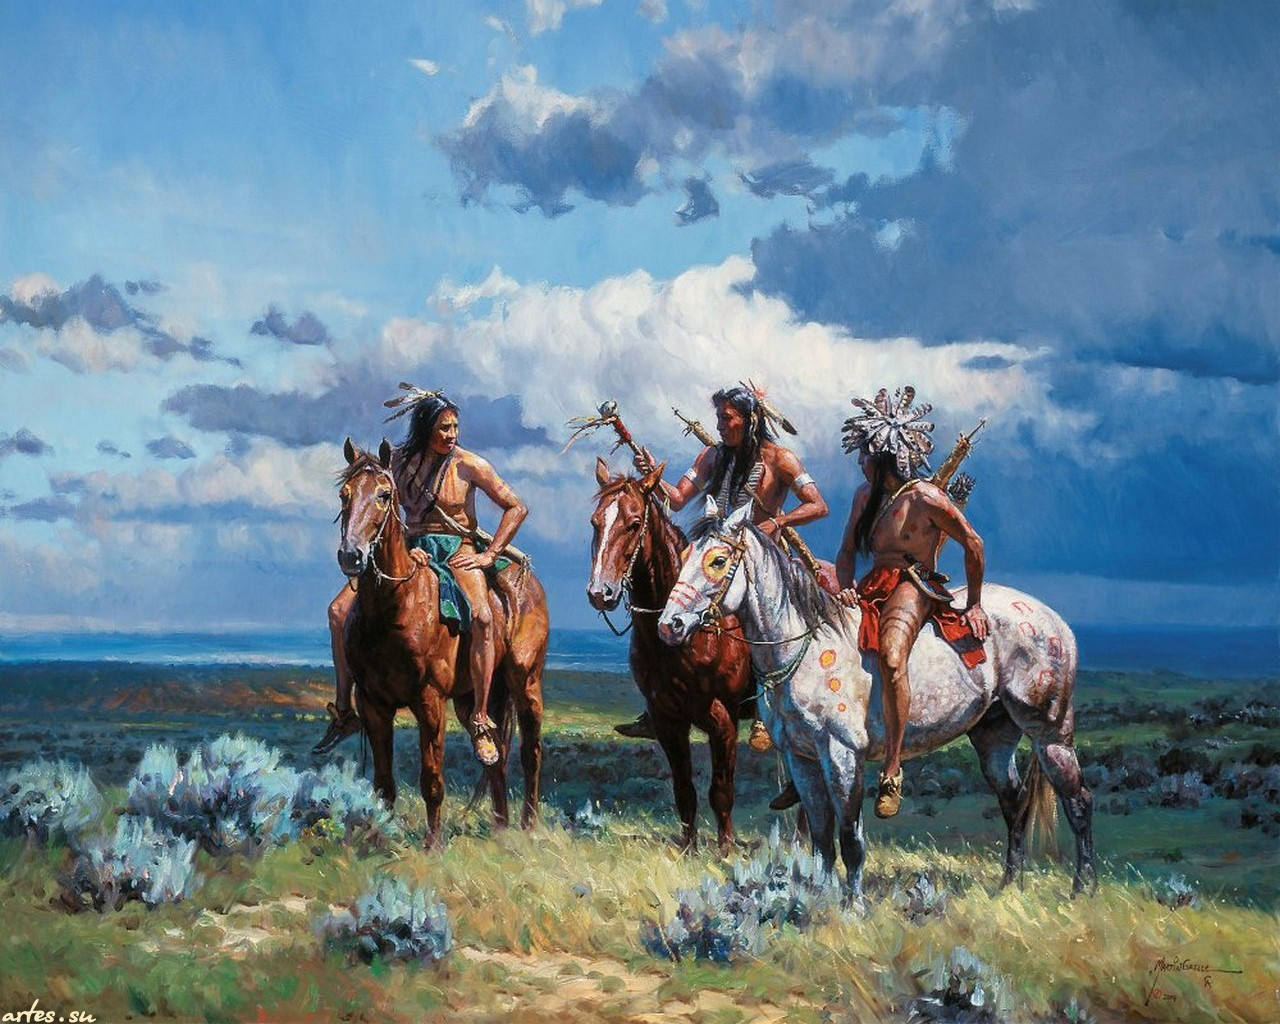 Native American Backgrounds for Facebook HD wallpaper background 1280x1024